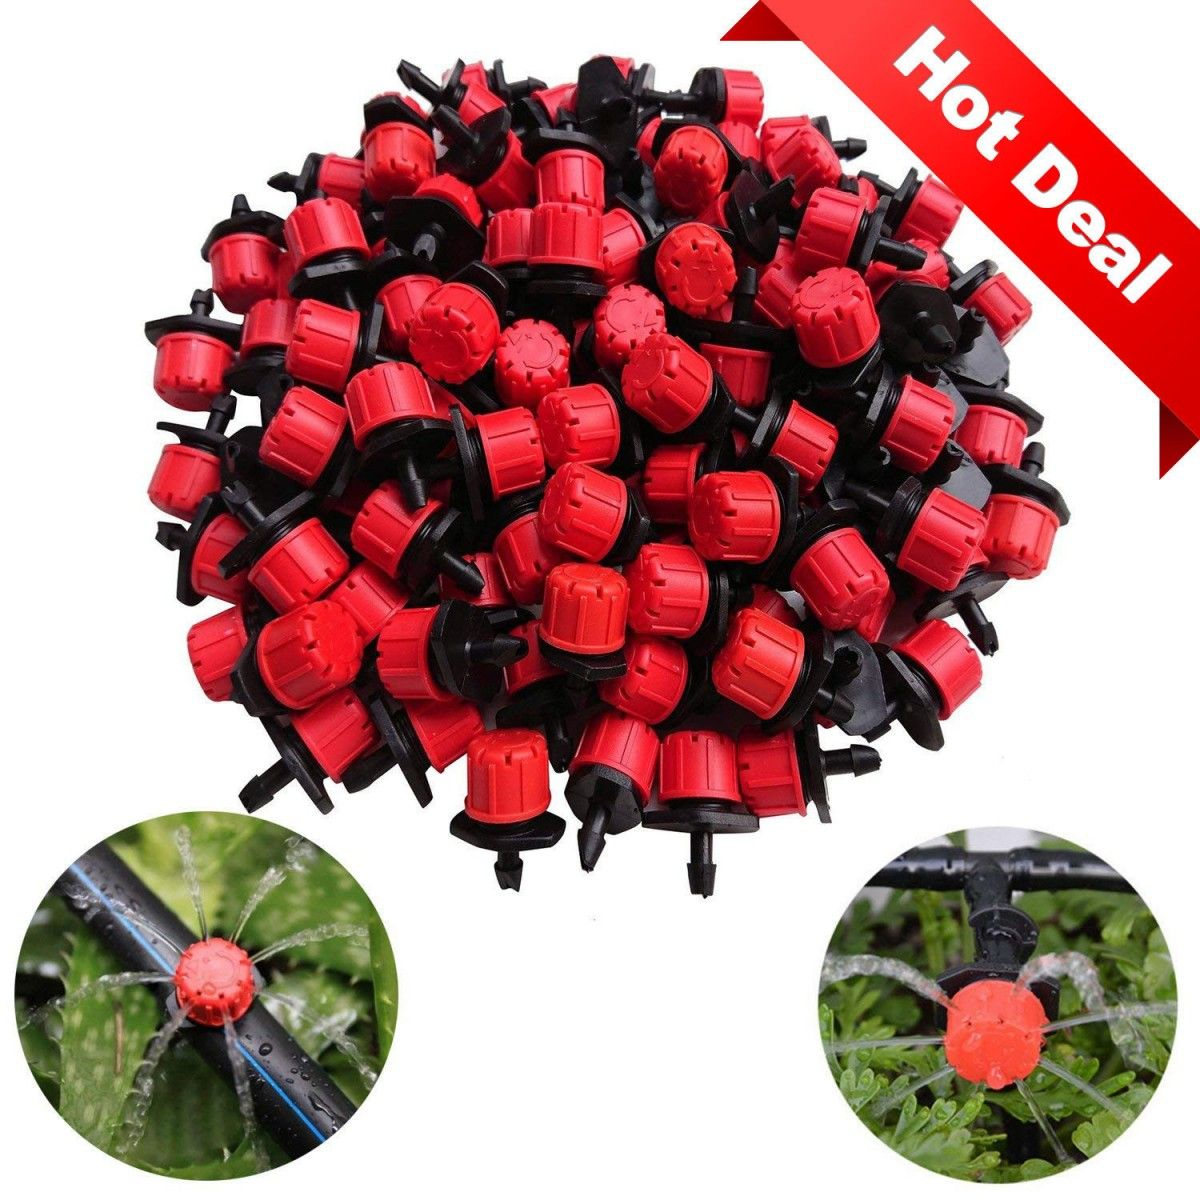 Kalolary 100Pcs 1//4Inch Adjustable Micro Drip Irrigation System Watering Sprinklers Anti-Clogging Emitter Dripper Red Garden Supplies